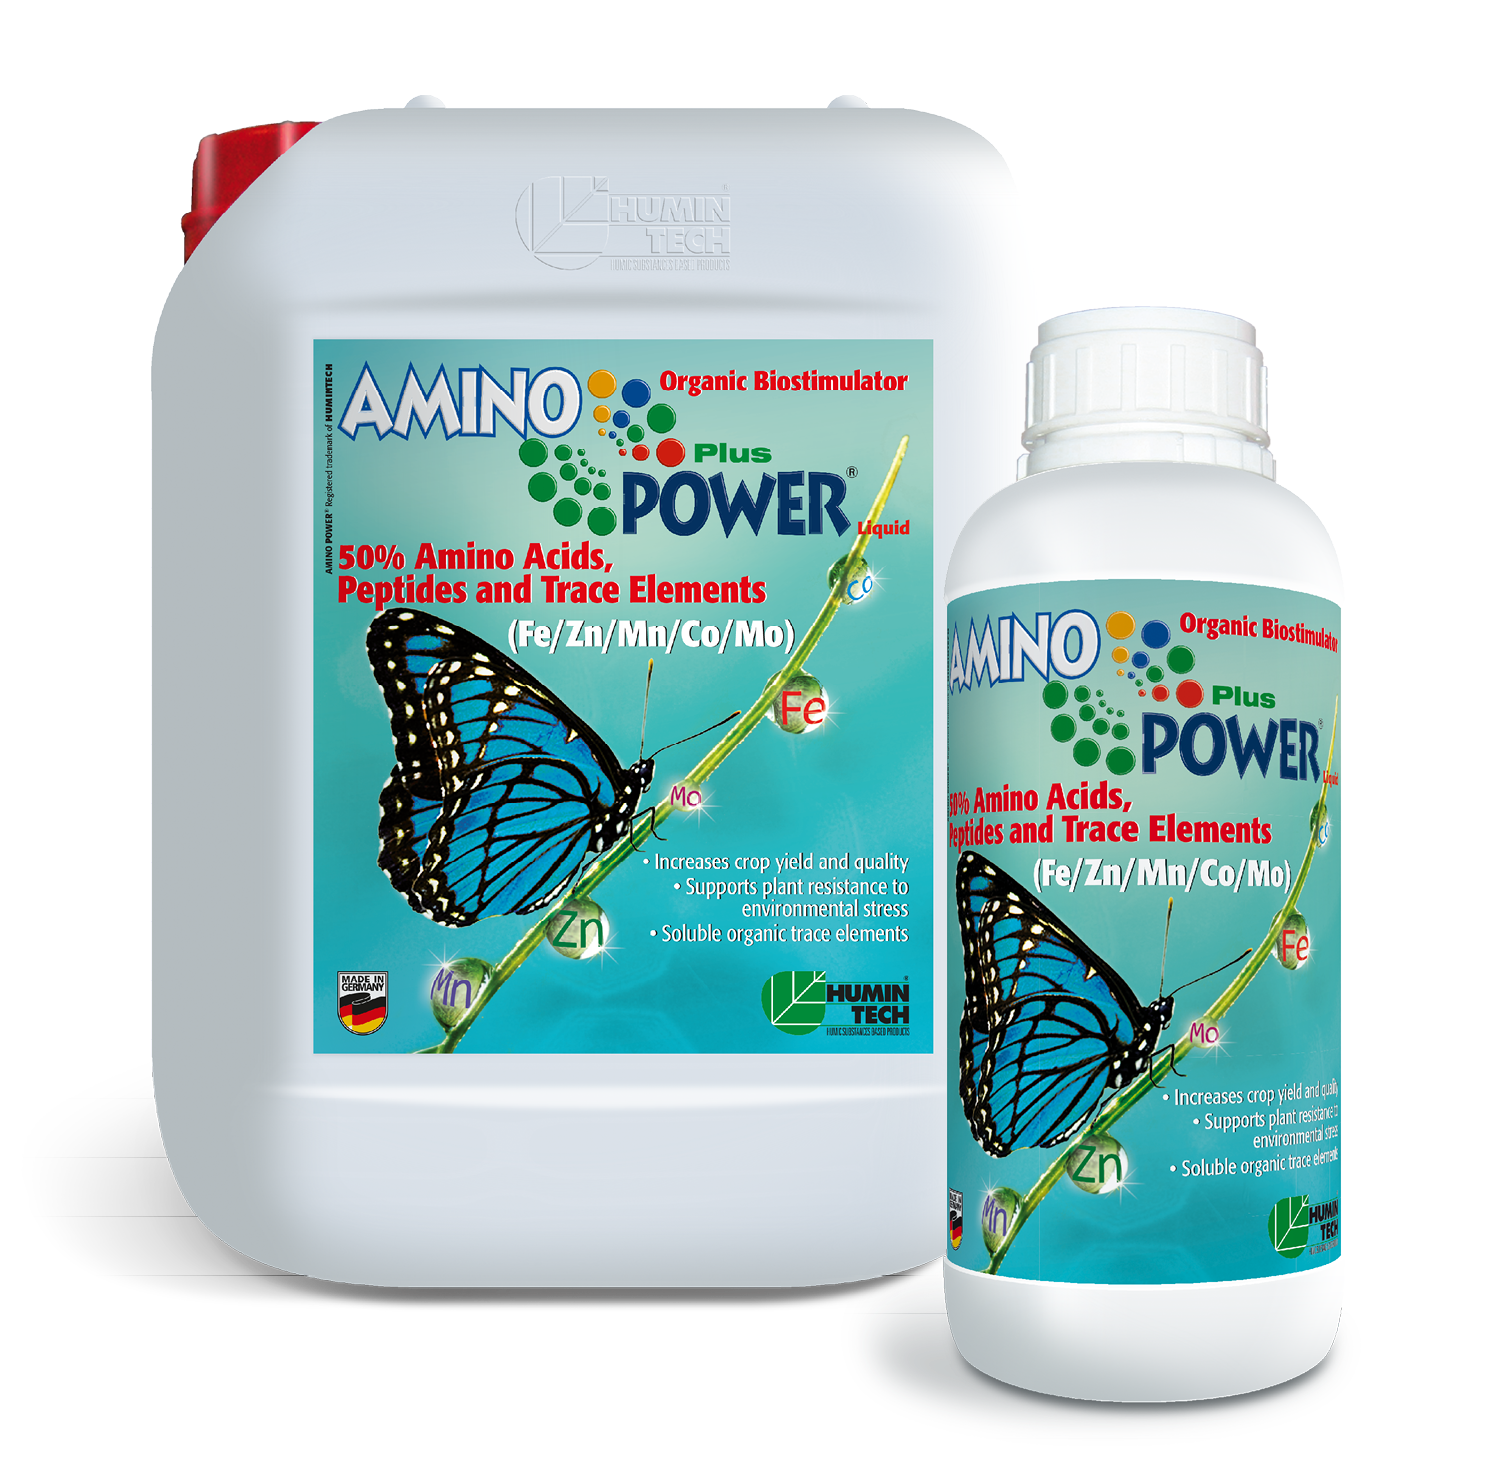 AMINO POWER Plus Liquid Organic Micronutrient 50% Amino Acids, Peptides and Micronutrients